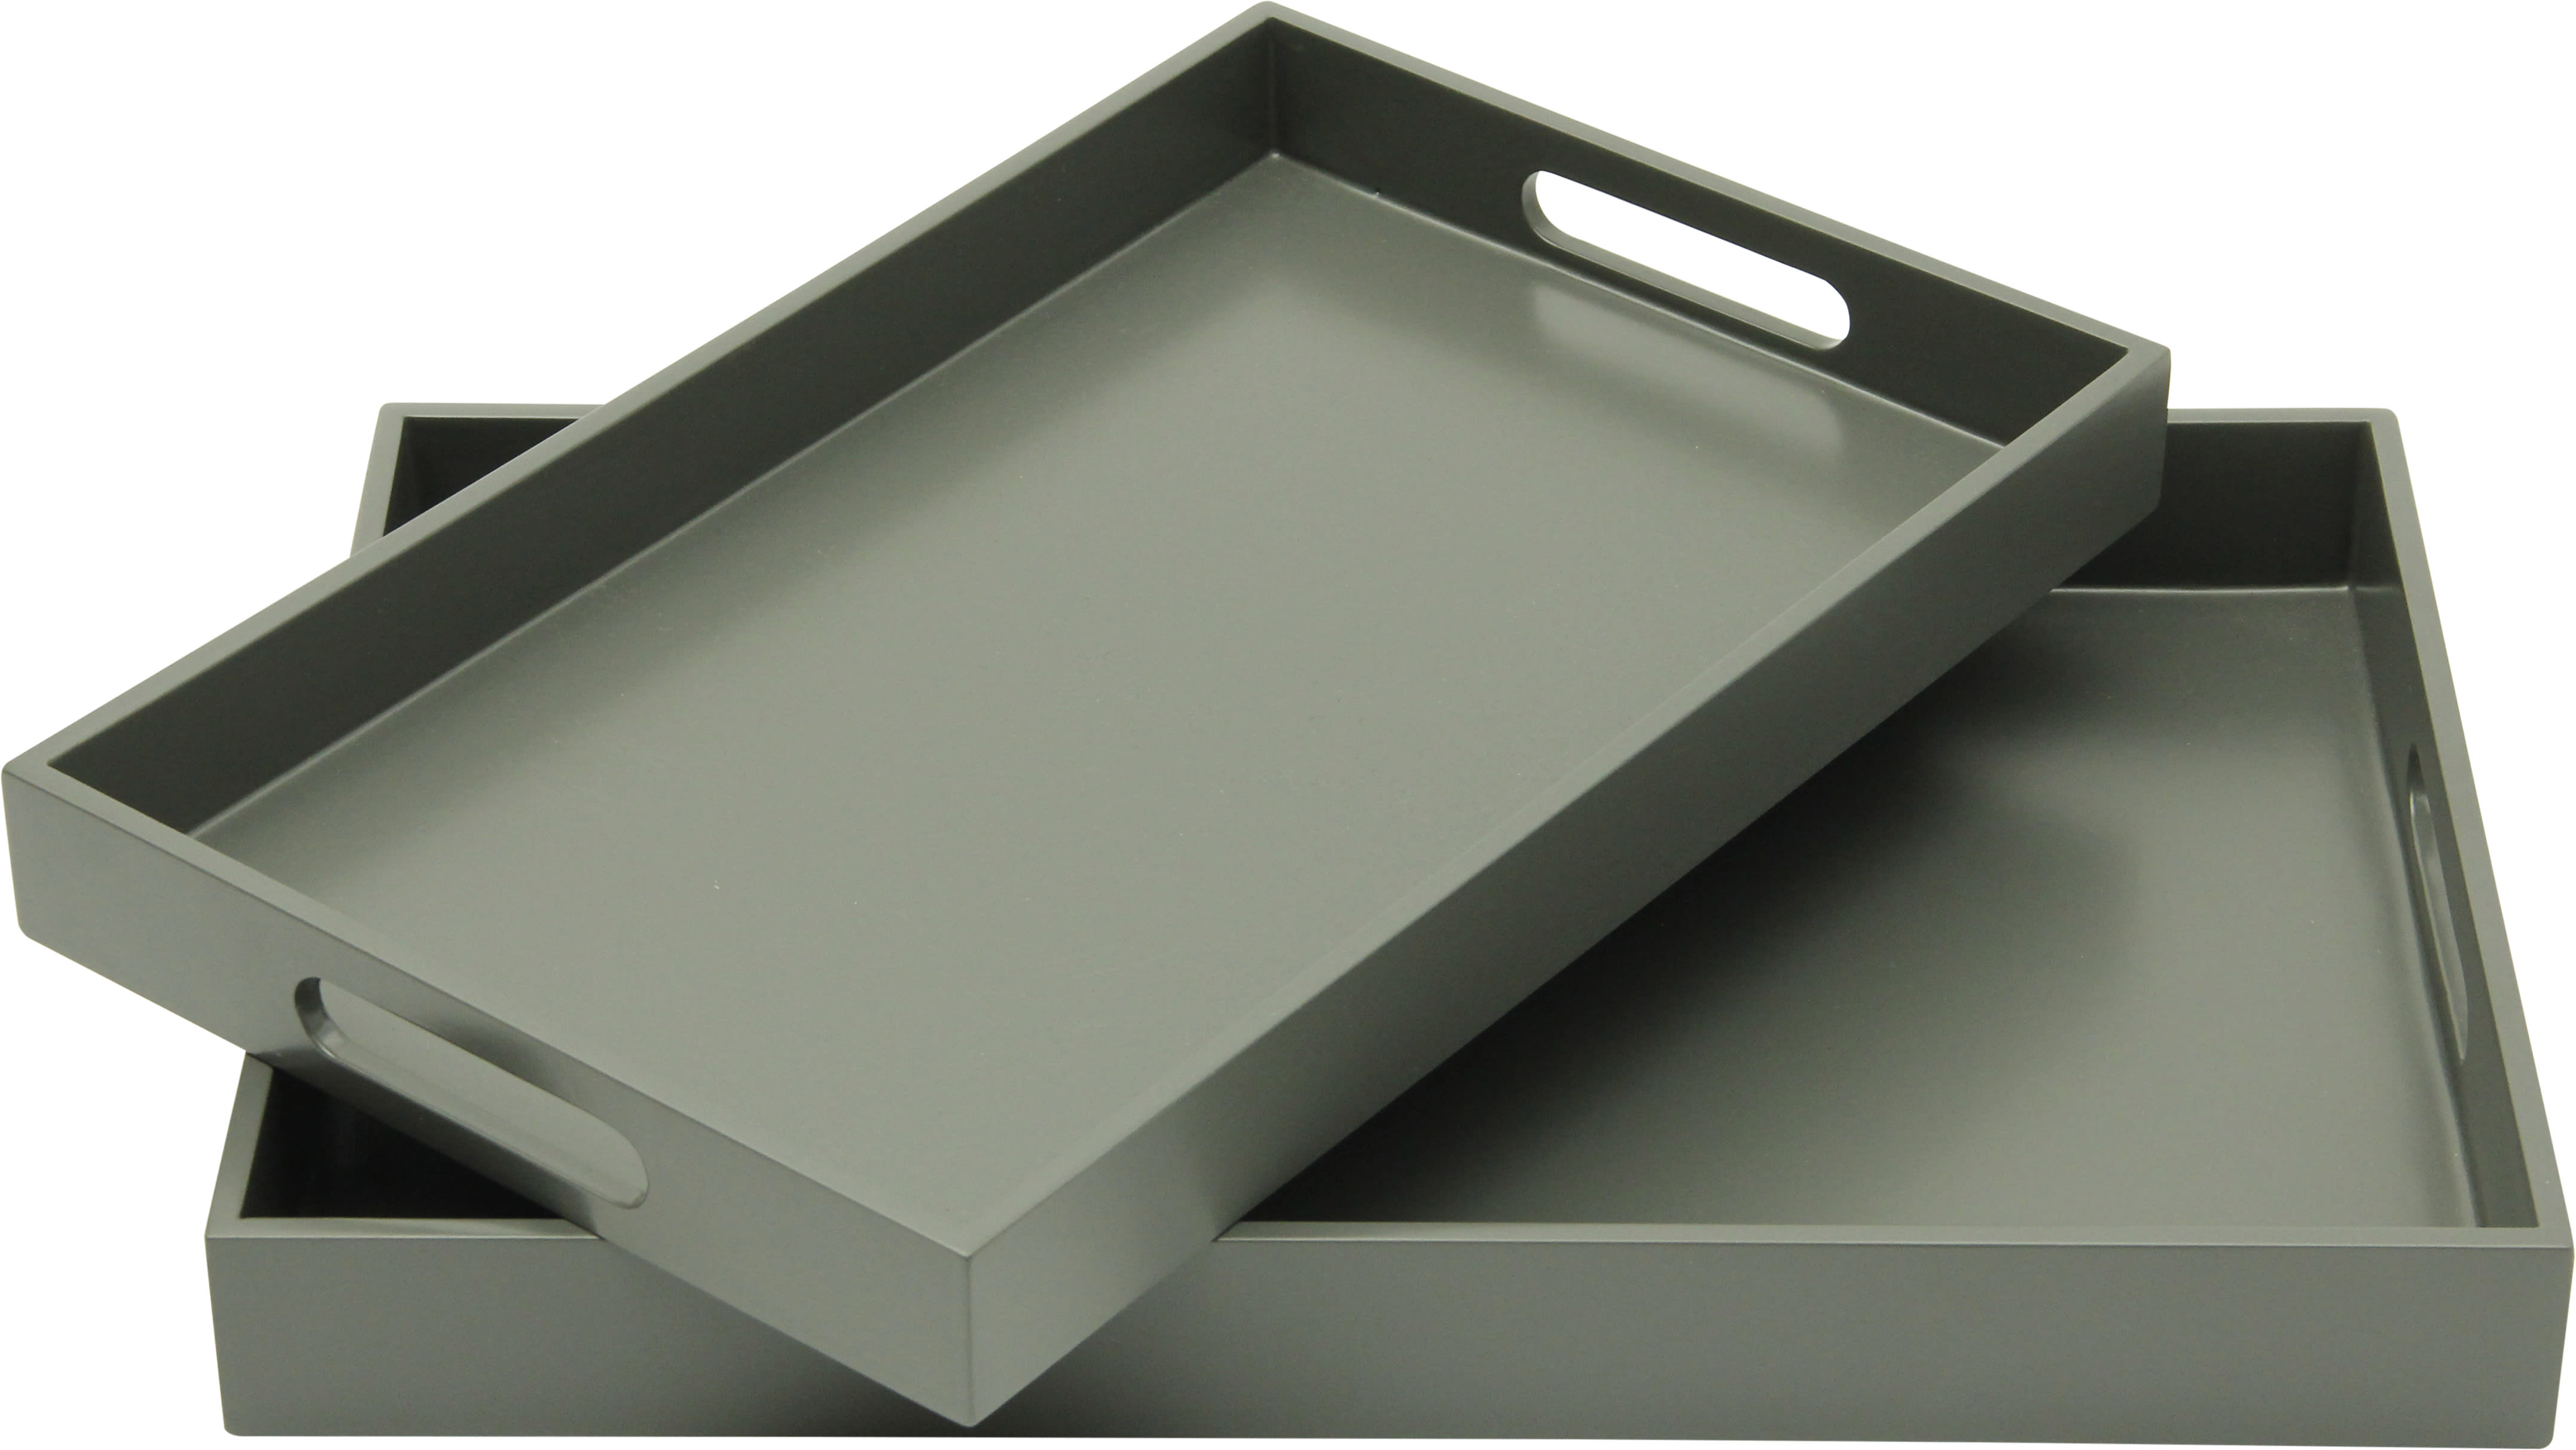 https://www.designidk.com/images/2282/tree-lacquered-rectangular-tray-dark-charcoal-starting-from-445jpg